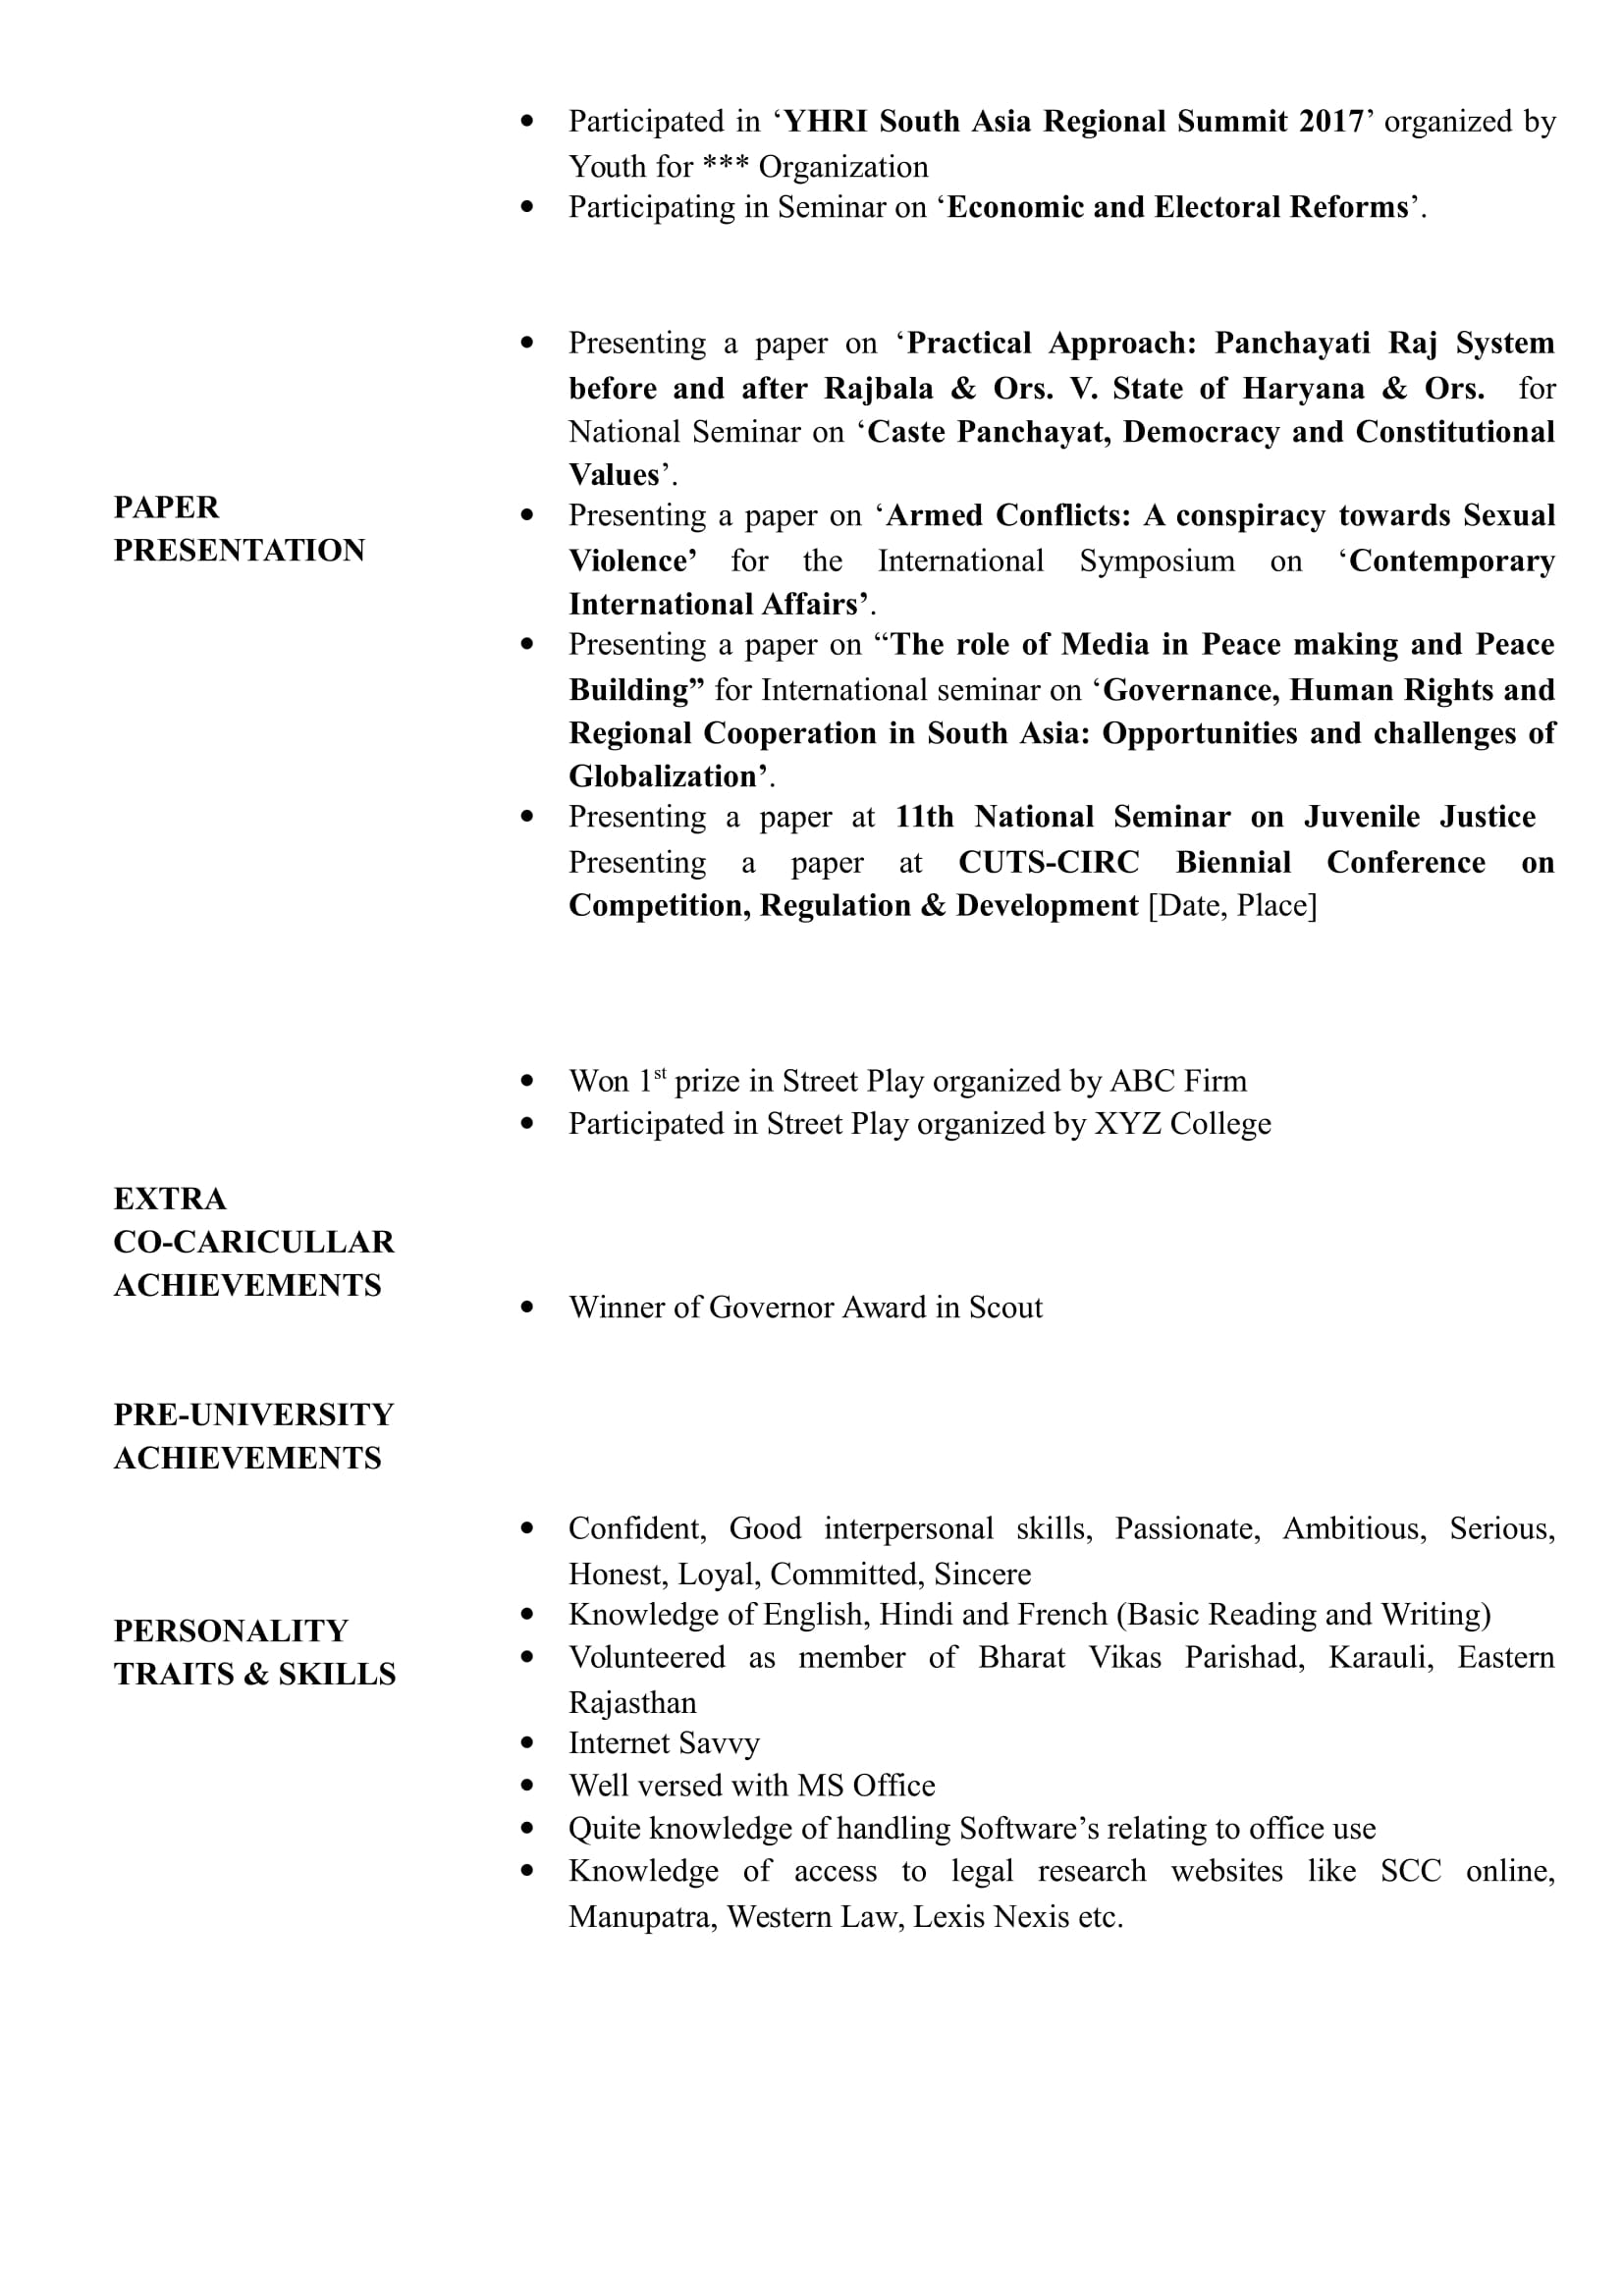 Resume Templates For BBA Law Freshers - Download Free